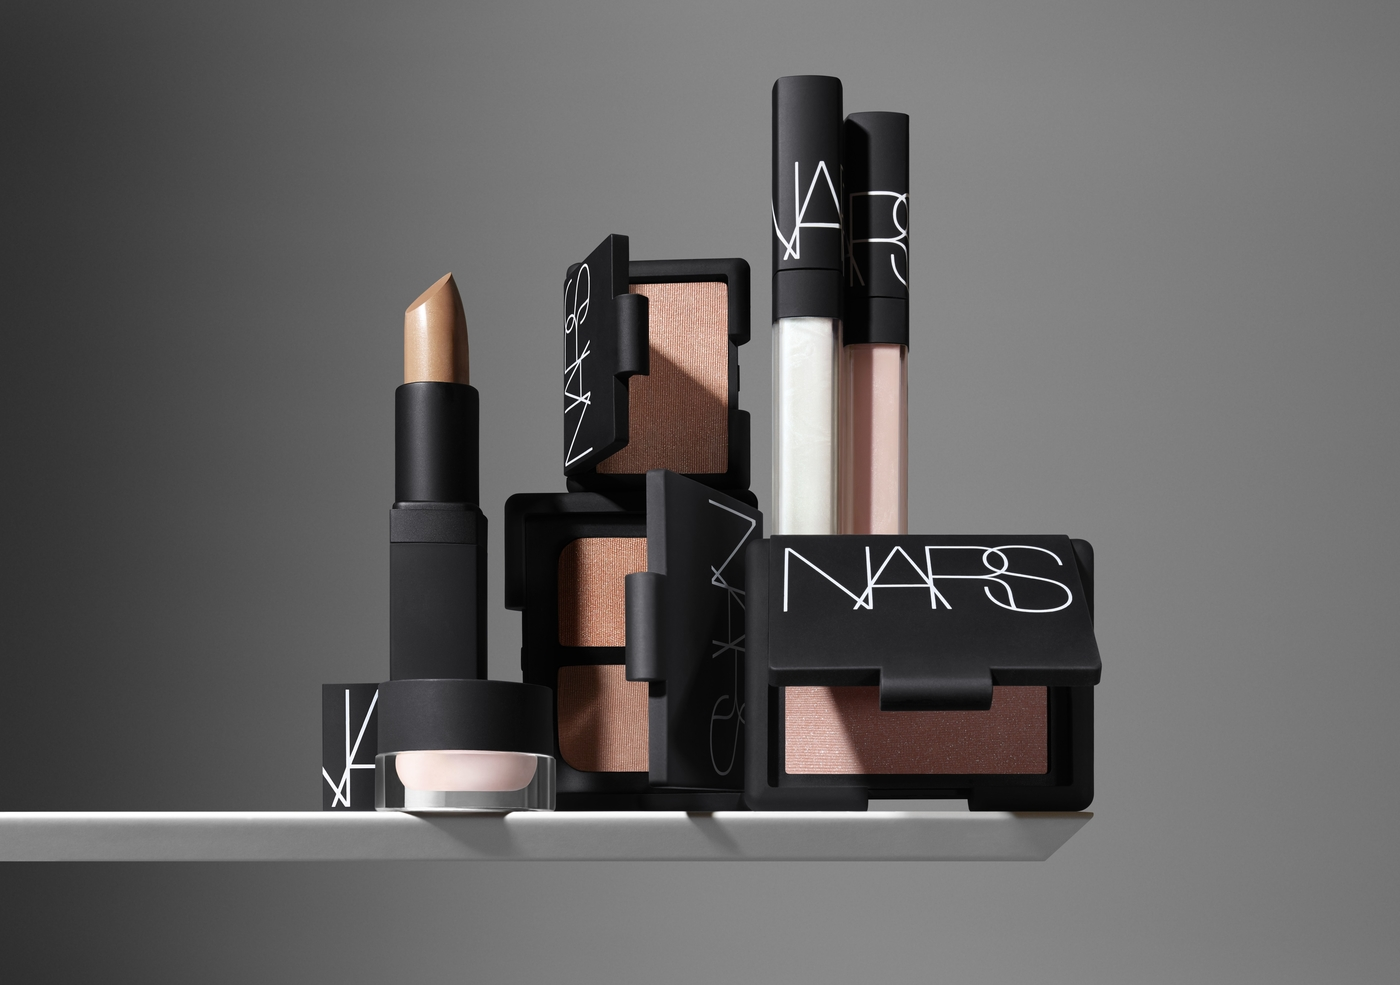 NARS-Spring-2015-Color-Collection-Stylized-Group-Shot-jpeg.jpg